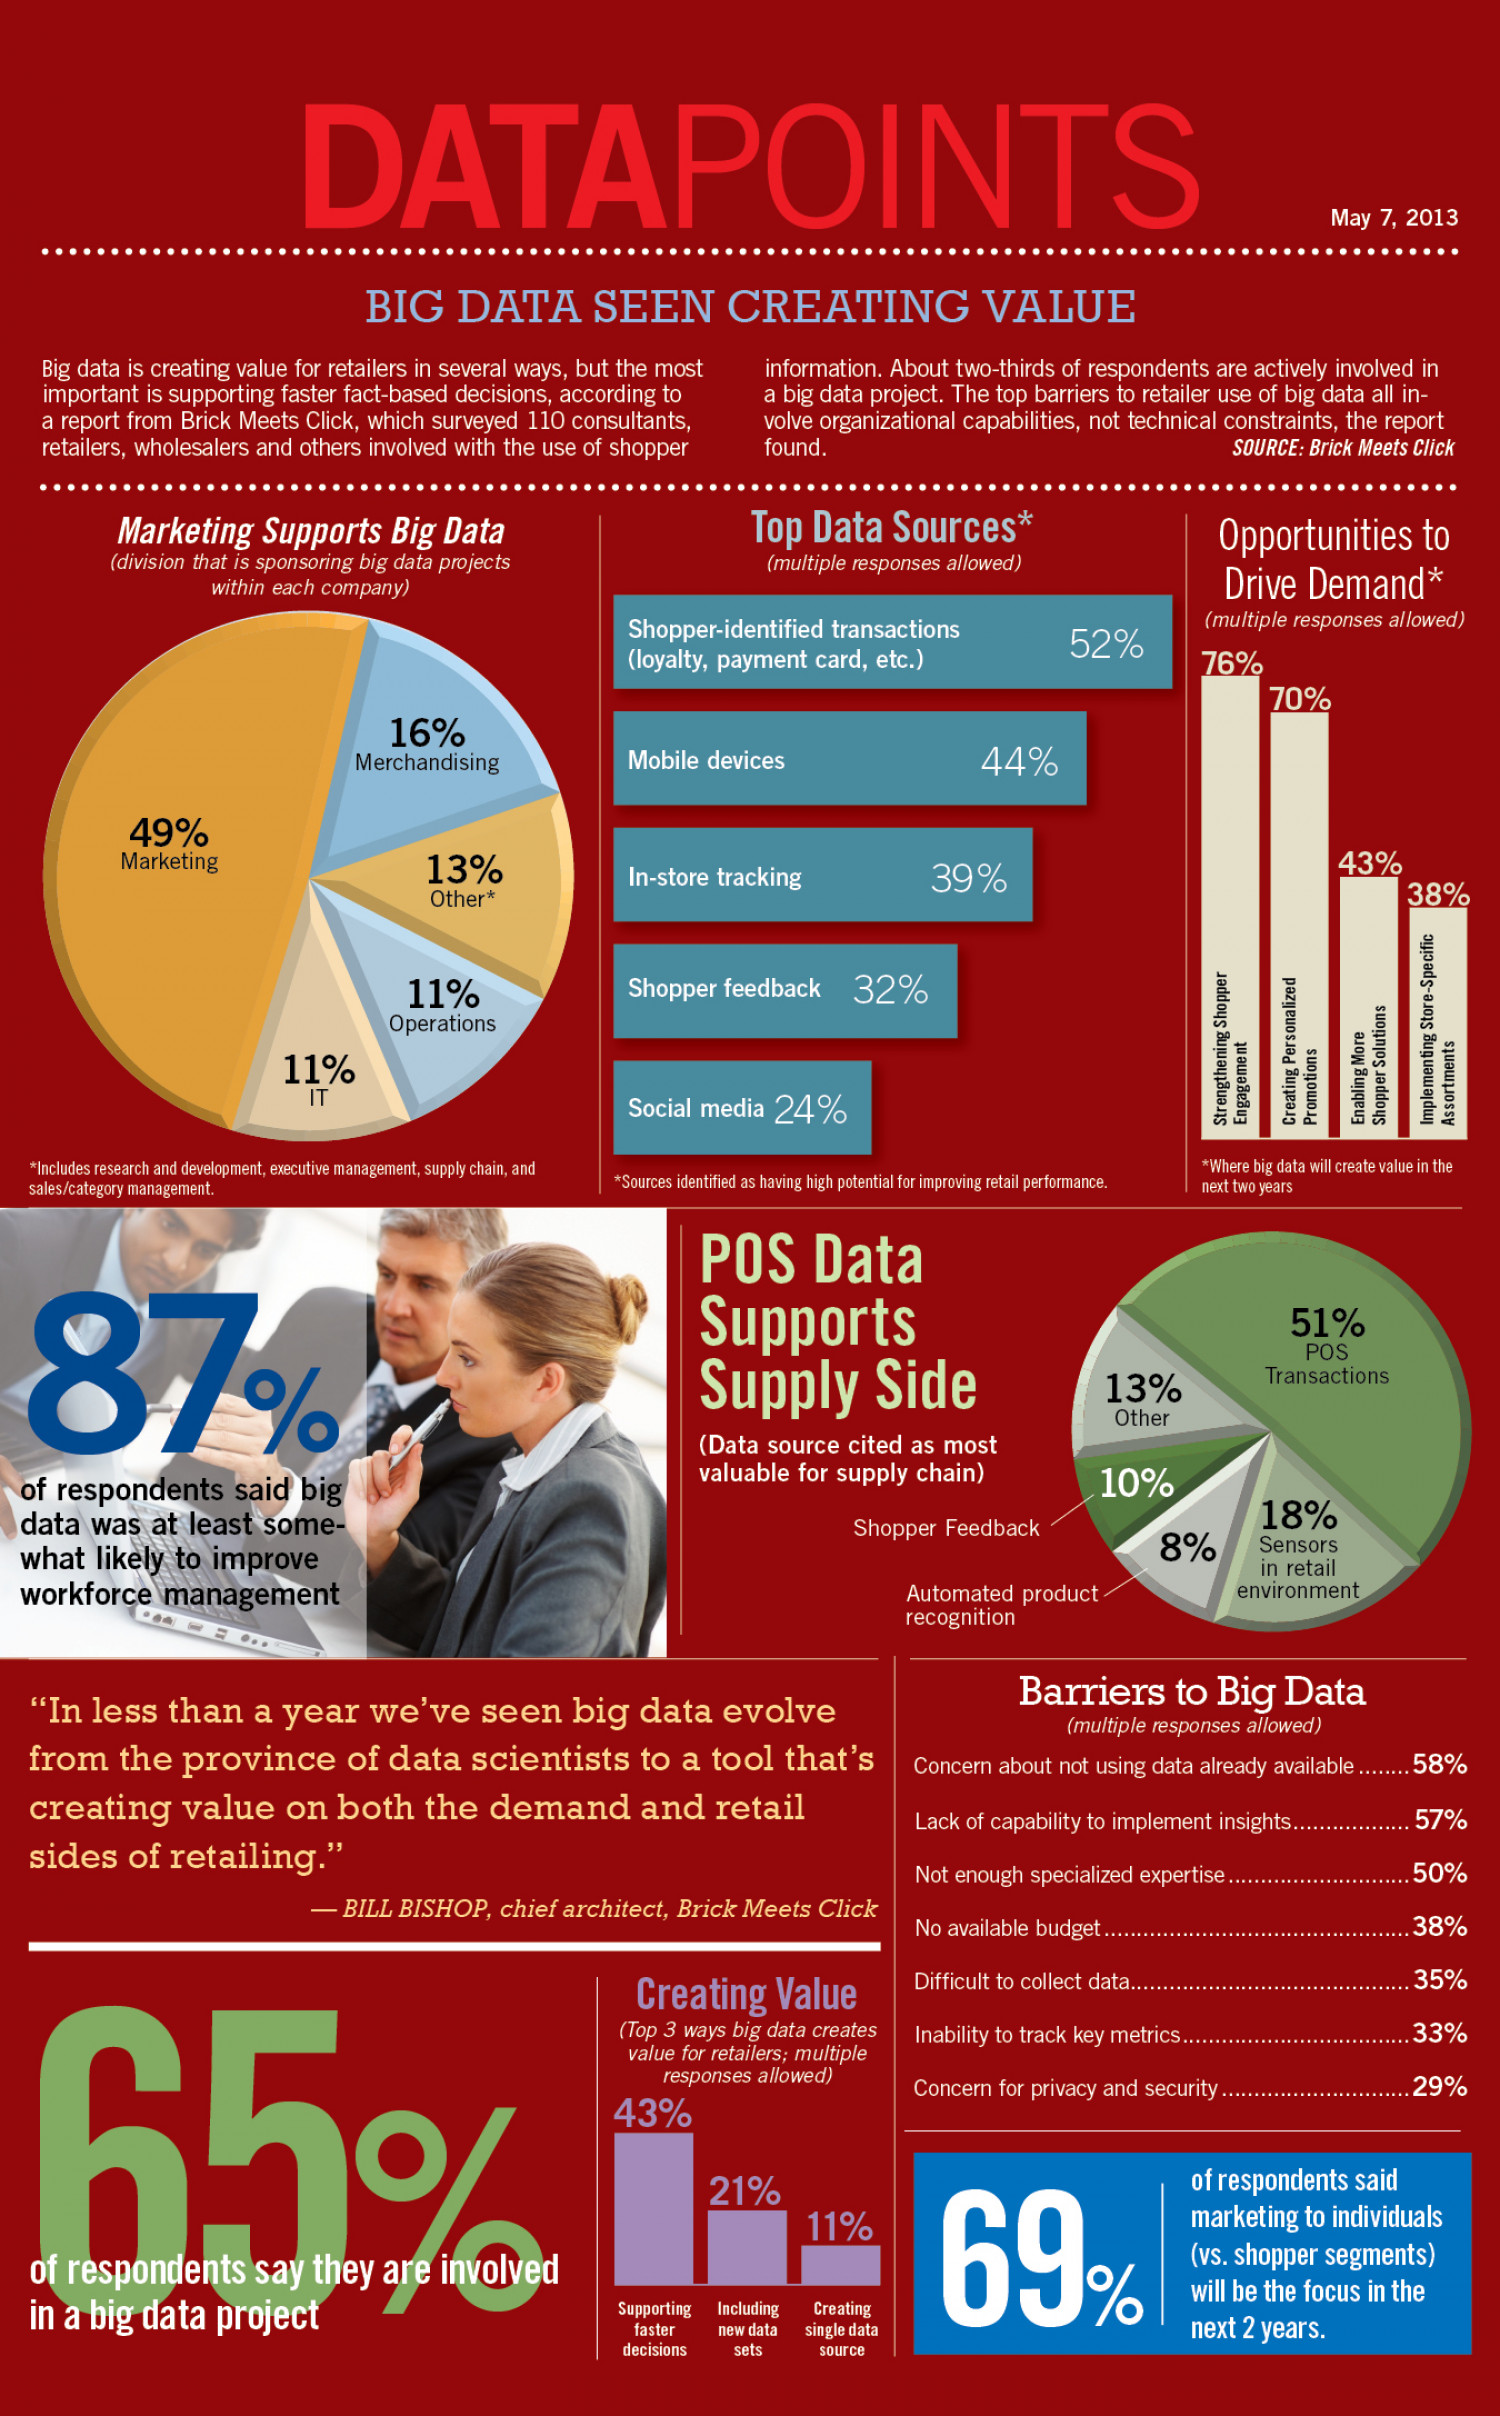 Big Data Seen Creating Value Infographic